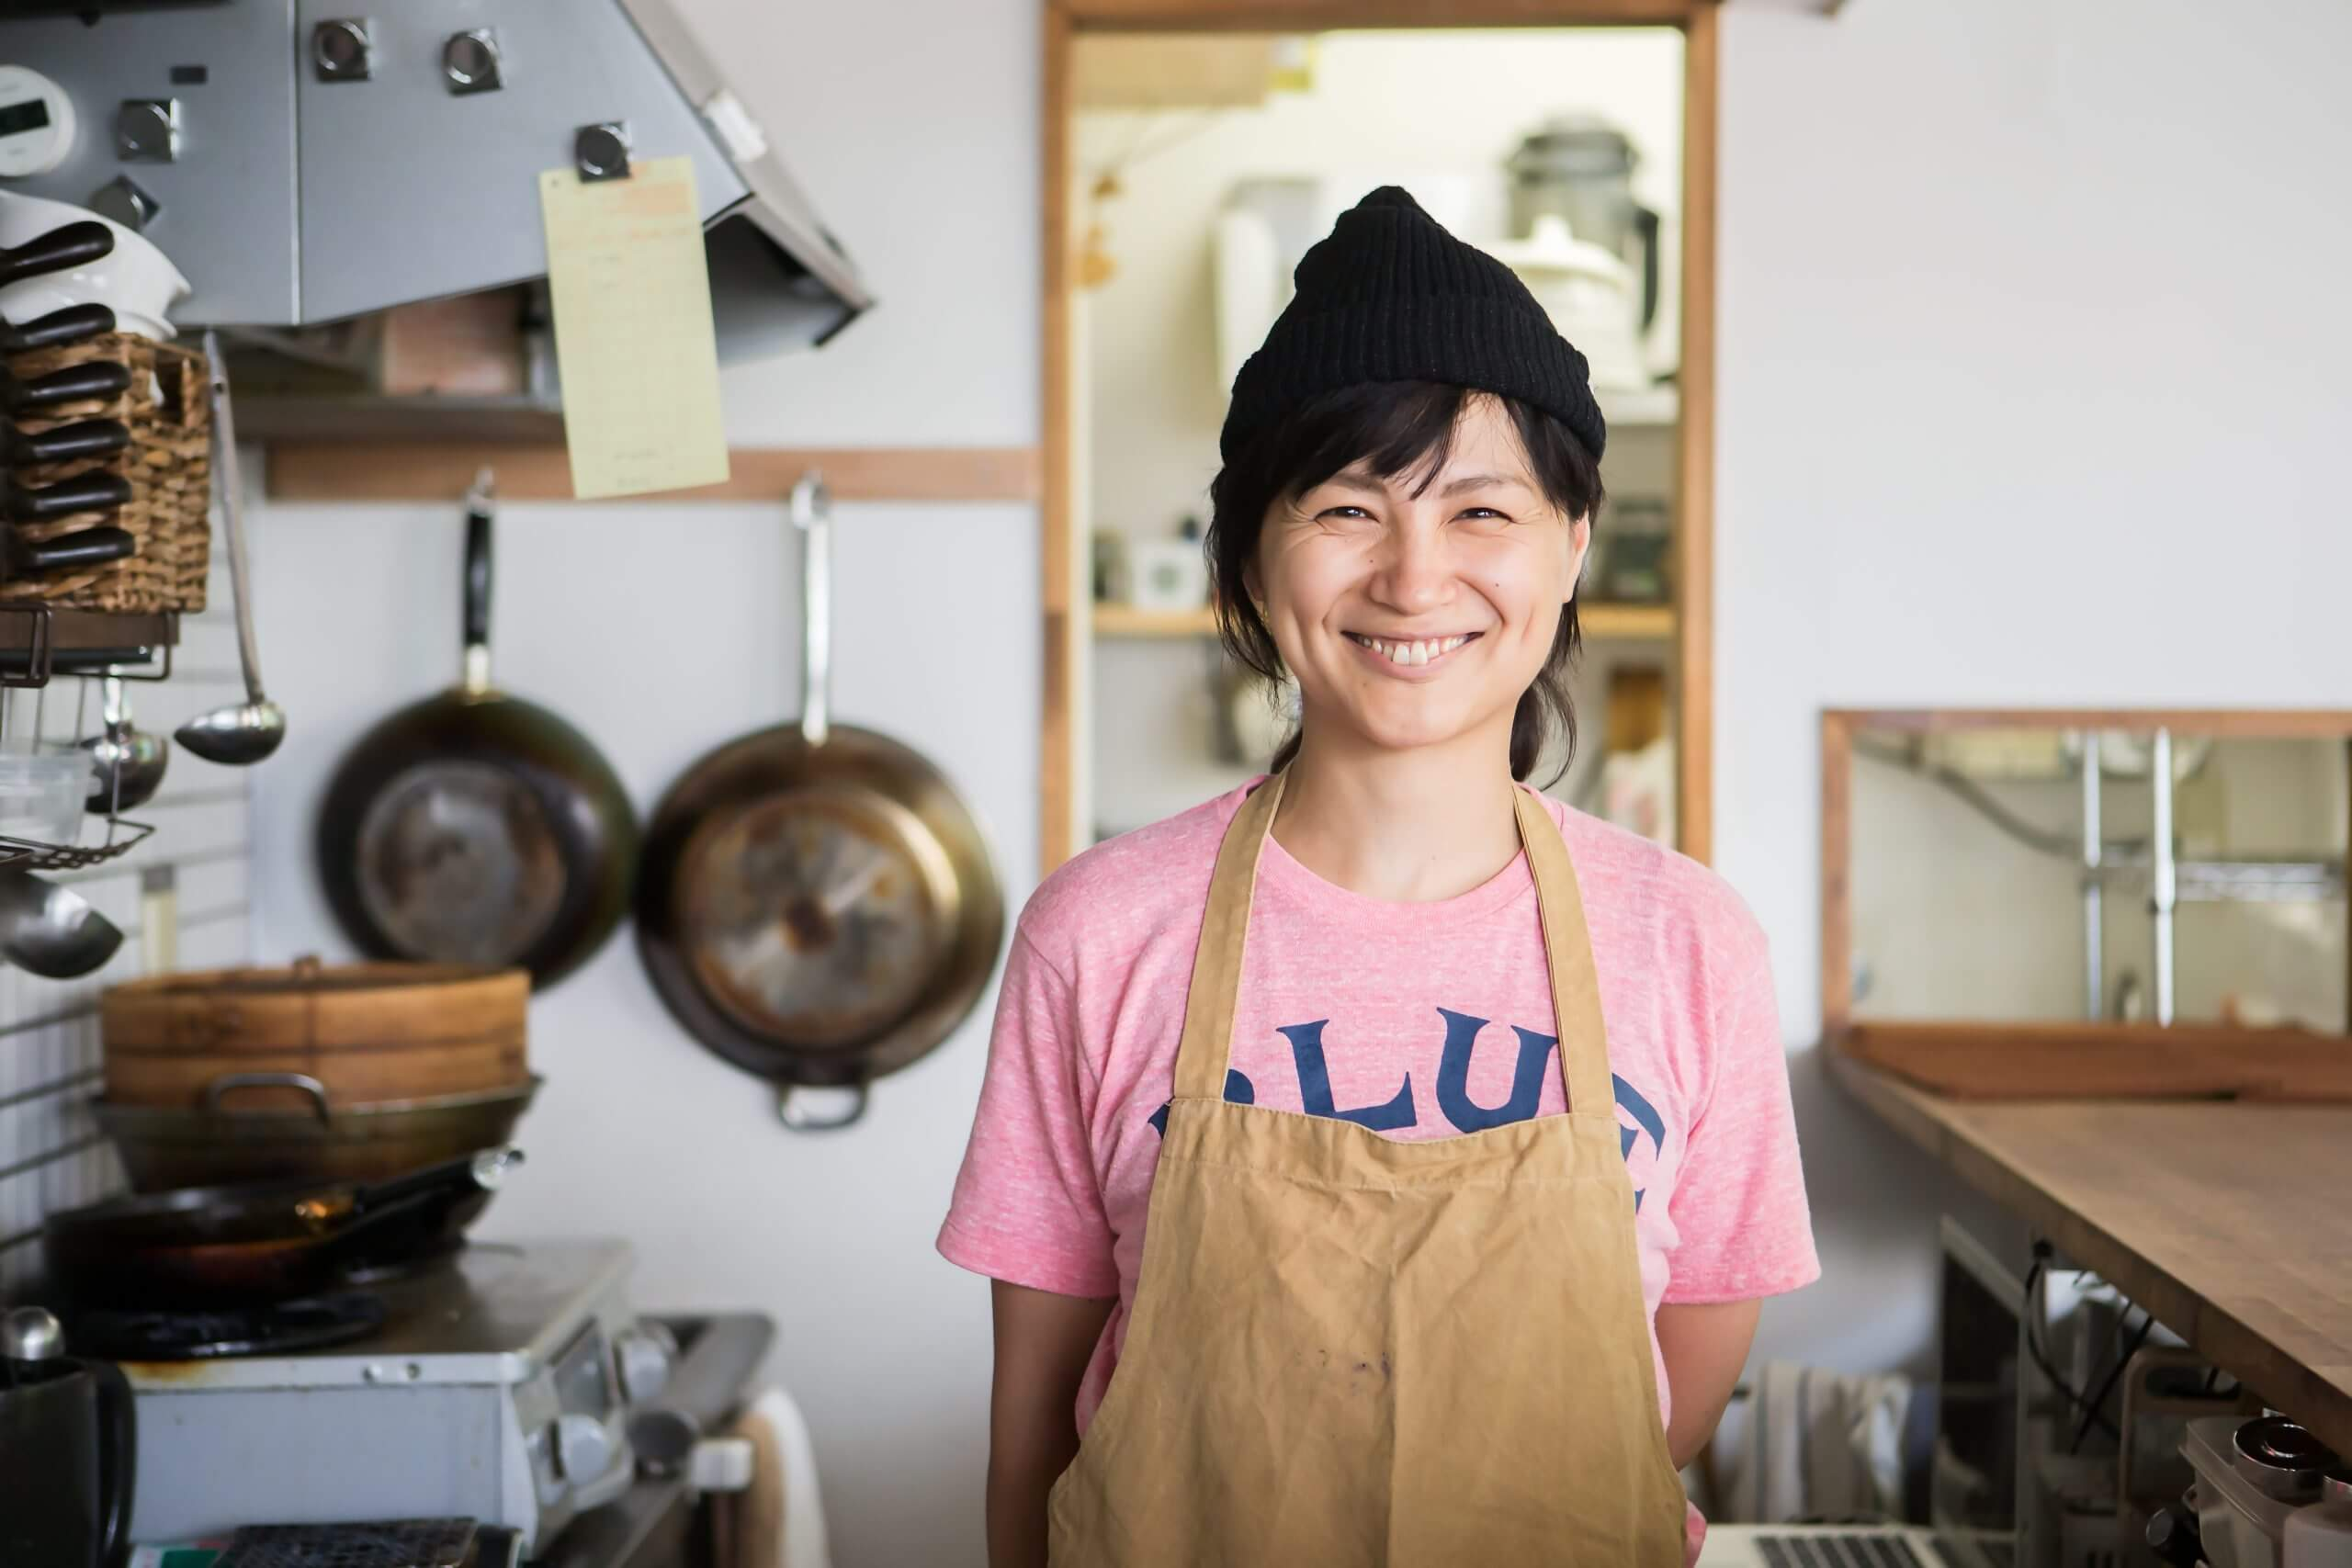 A woman in a canvas apron and pink shirt happily smiling at you from her kitchen.